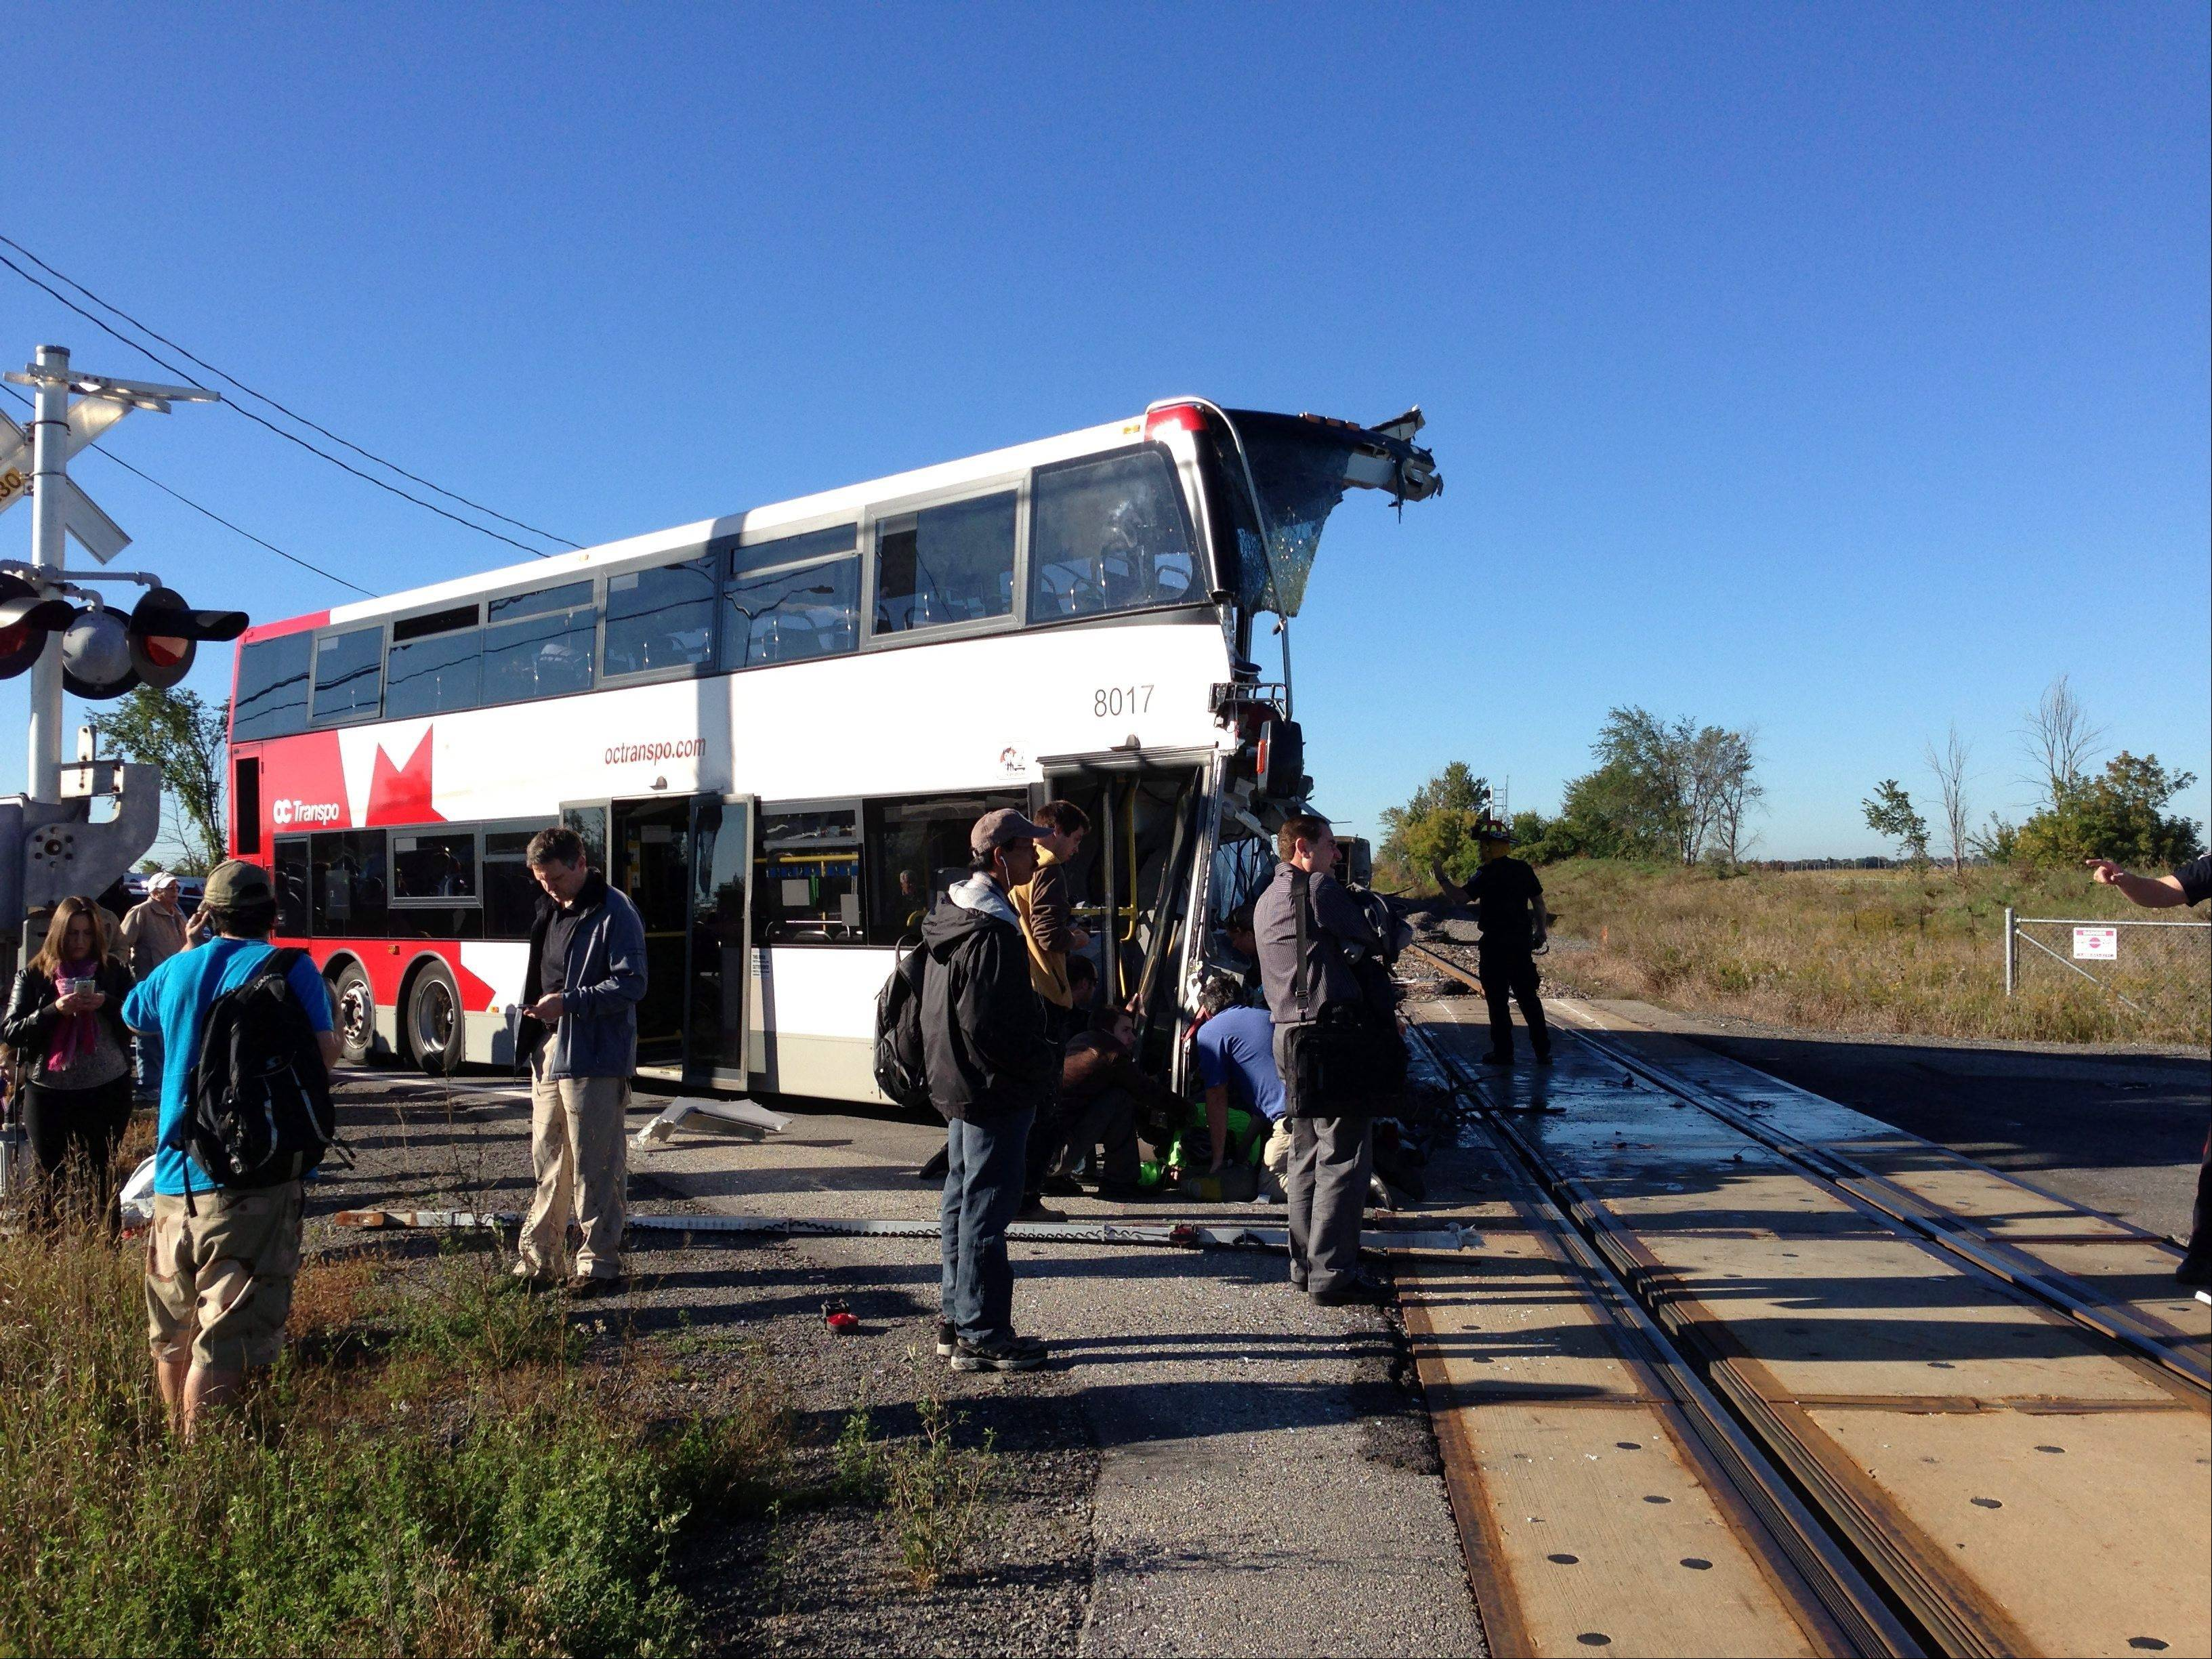 A city bus is severely damaged after colliding with a Via Rail passenger train at a crossing in Ottawa, Ontario, Wednesday, Sept. 18, 2013. An Ottawa Fire spokesman told CP24 television there are �multiple fatalities� and a number are injured from the bus but no injuries on the train.